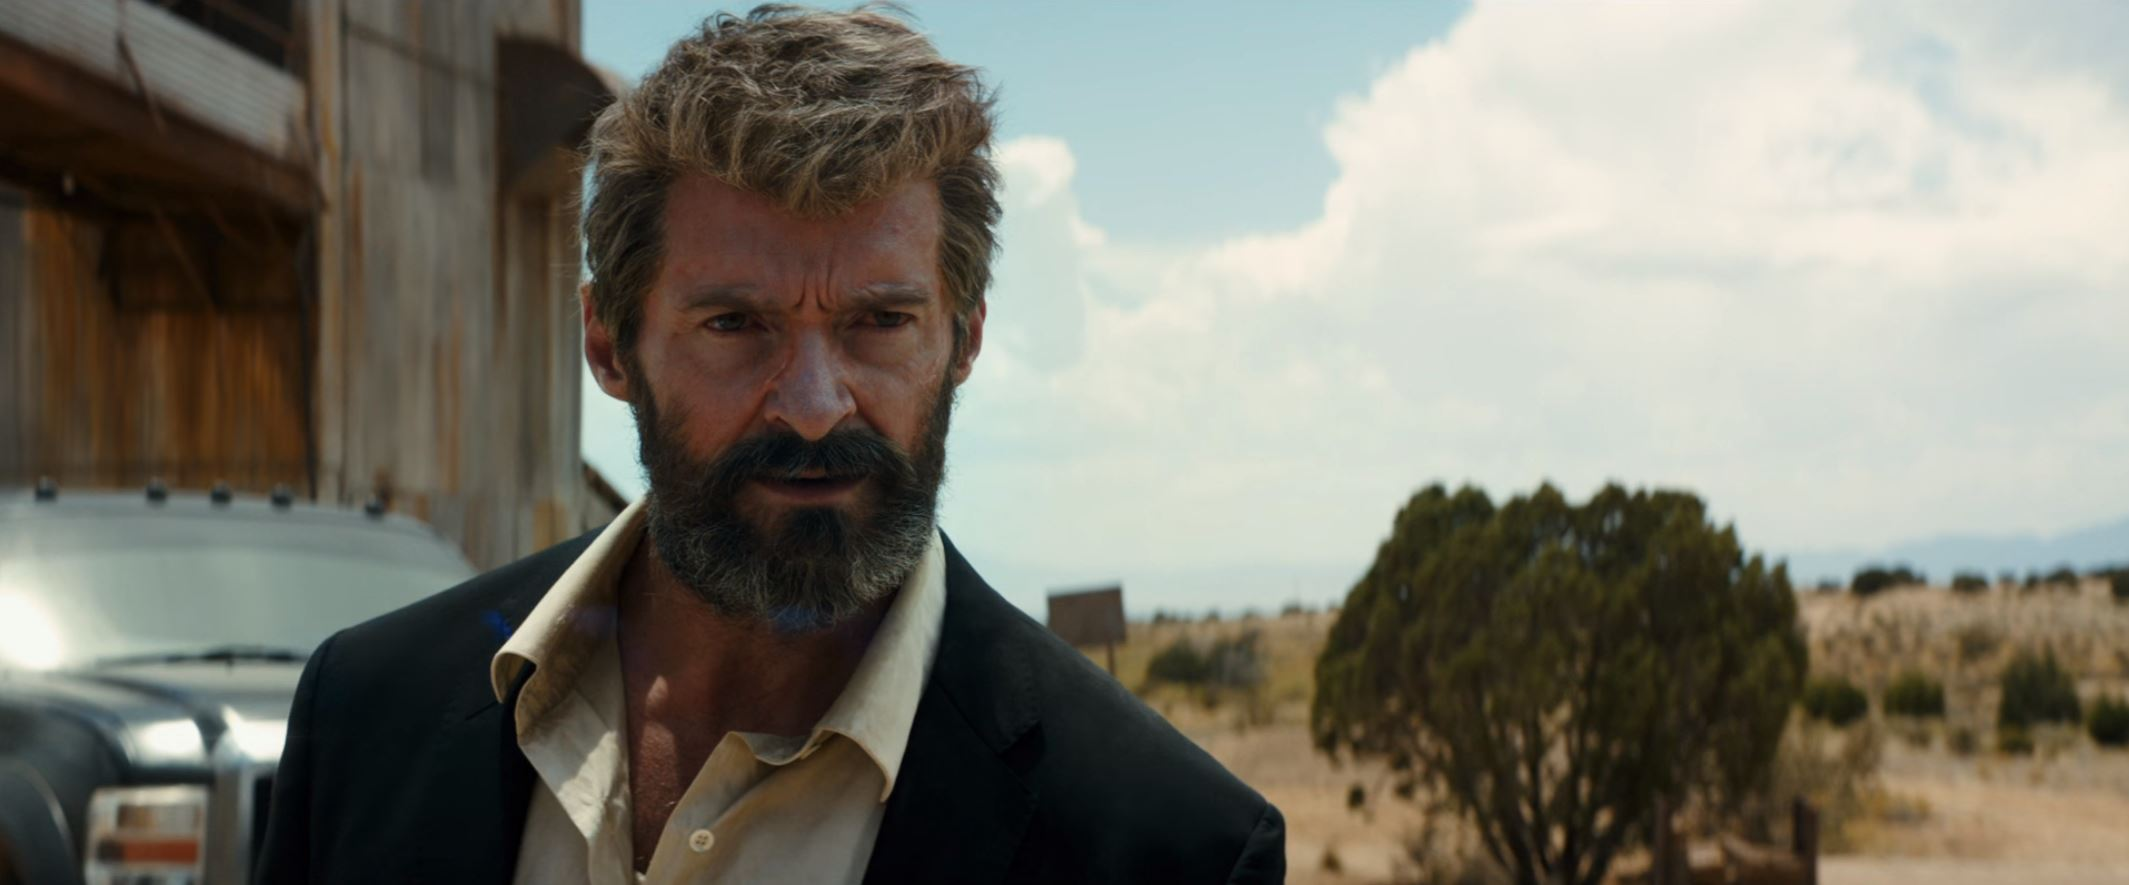 The Last Wolverine Film Trailer Is Here: 'Logan'